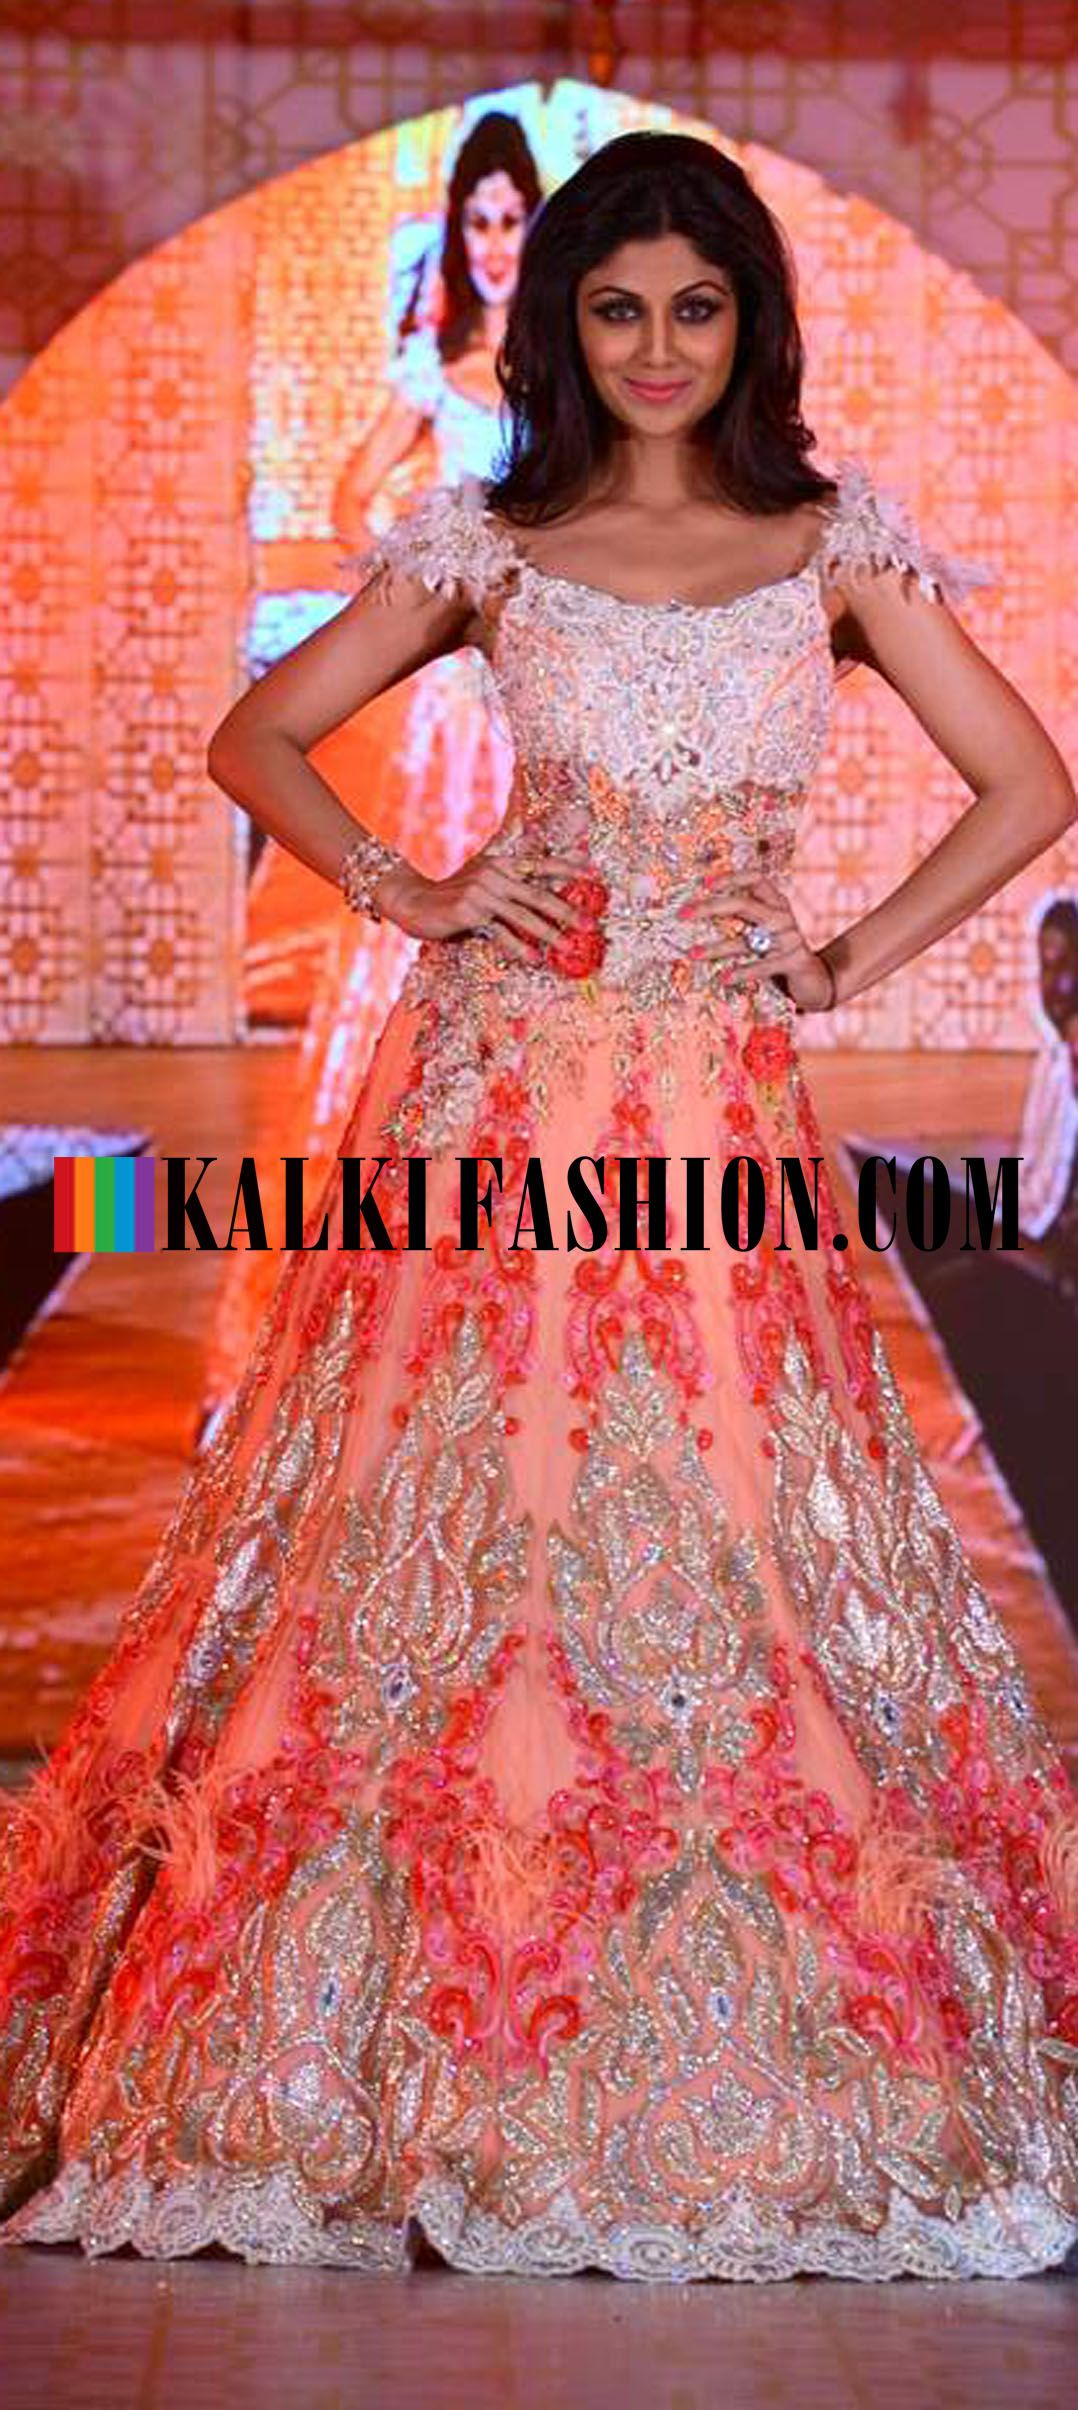 http://www.kalkifashion.com/ Shilpa Shetty as the show stopper in a ...